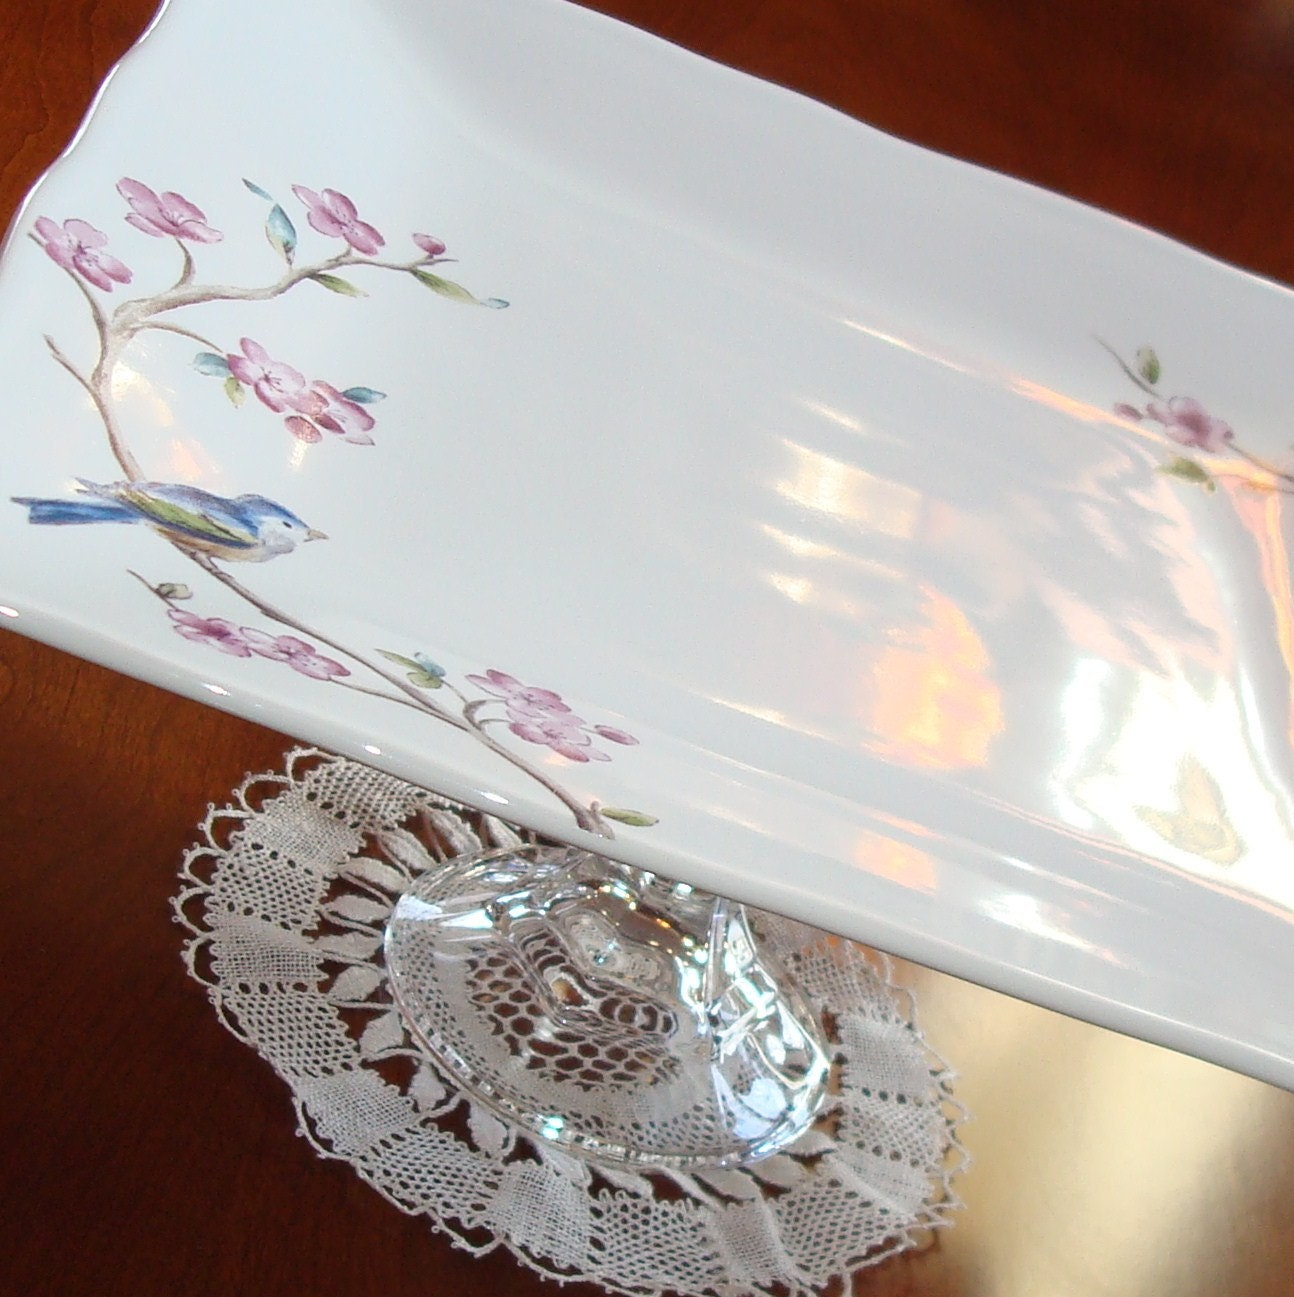 Bluebird and Blossoms Dessert Plate Pedestal No. 060 (11 x 5 inches) - makingtimetc